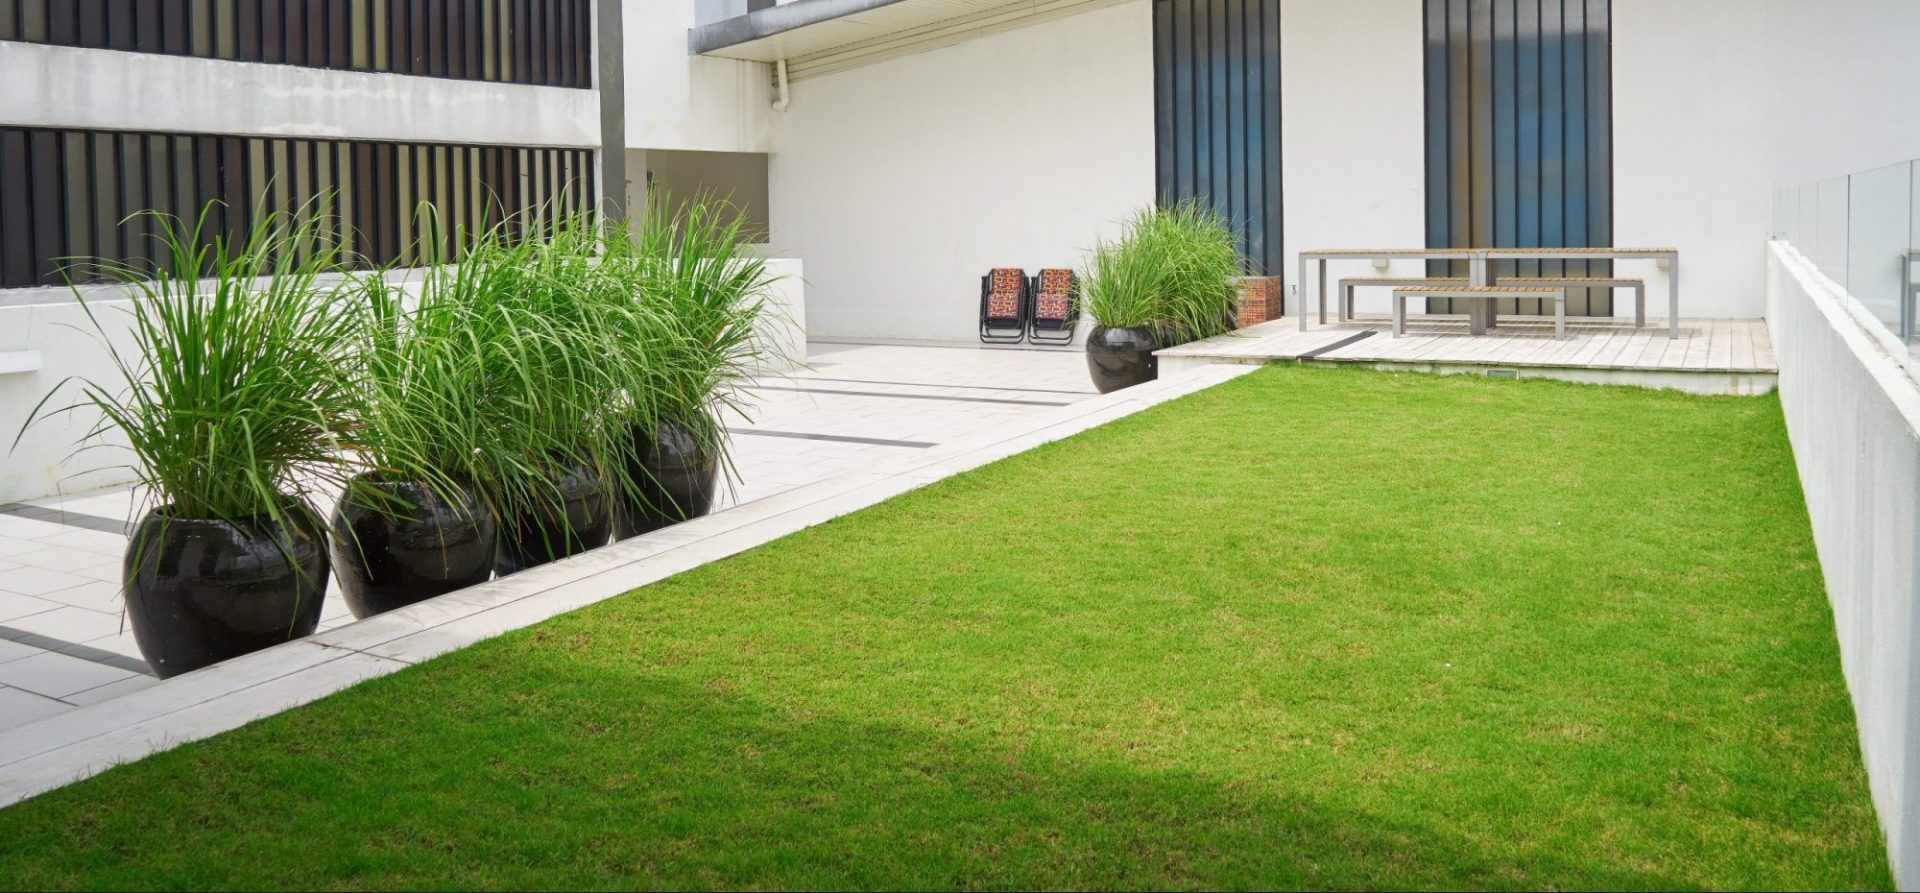 Hardscape patio at industrial facility with potted grasses and turf.